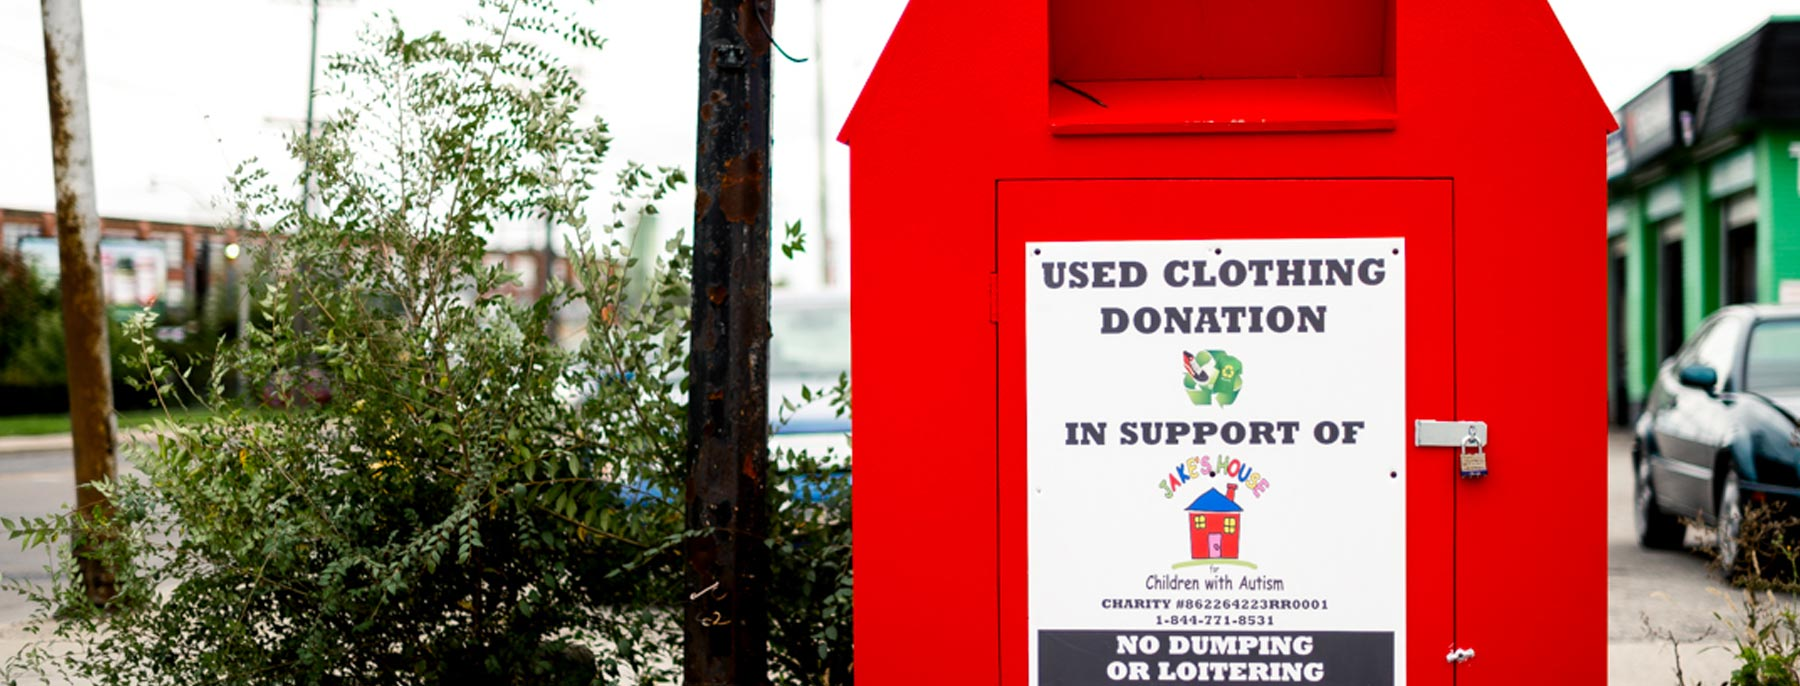 jakes-house-clothing-donation-bins-in-toronto-02